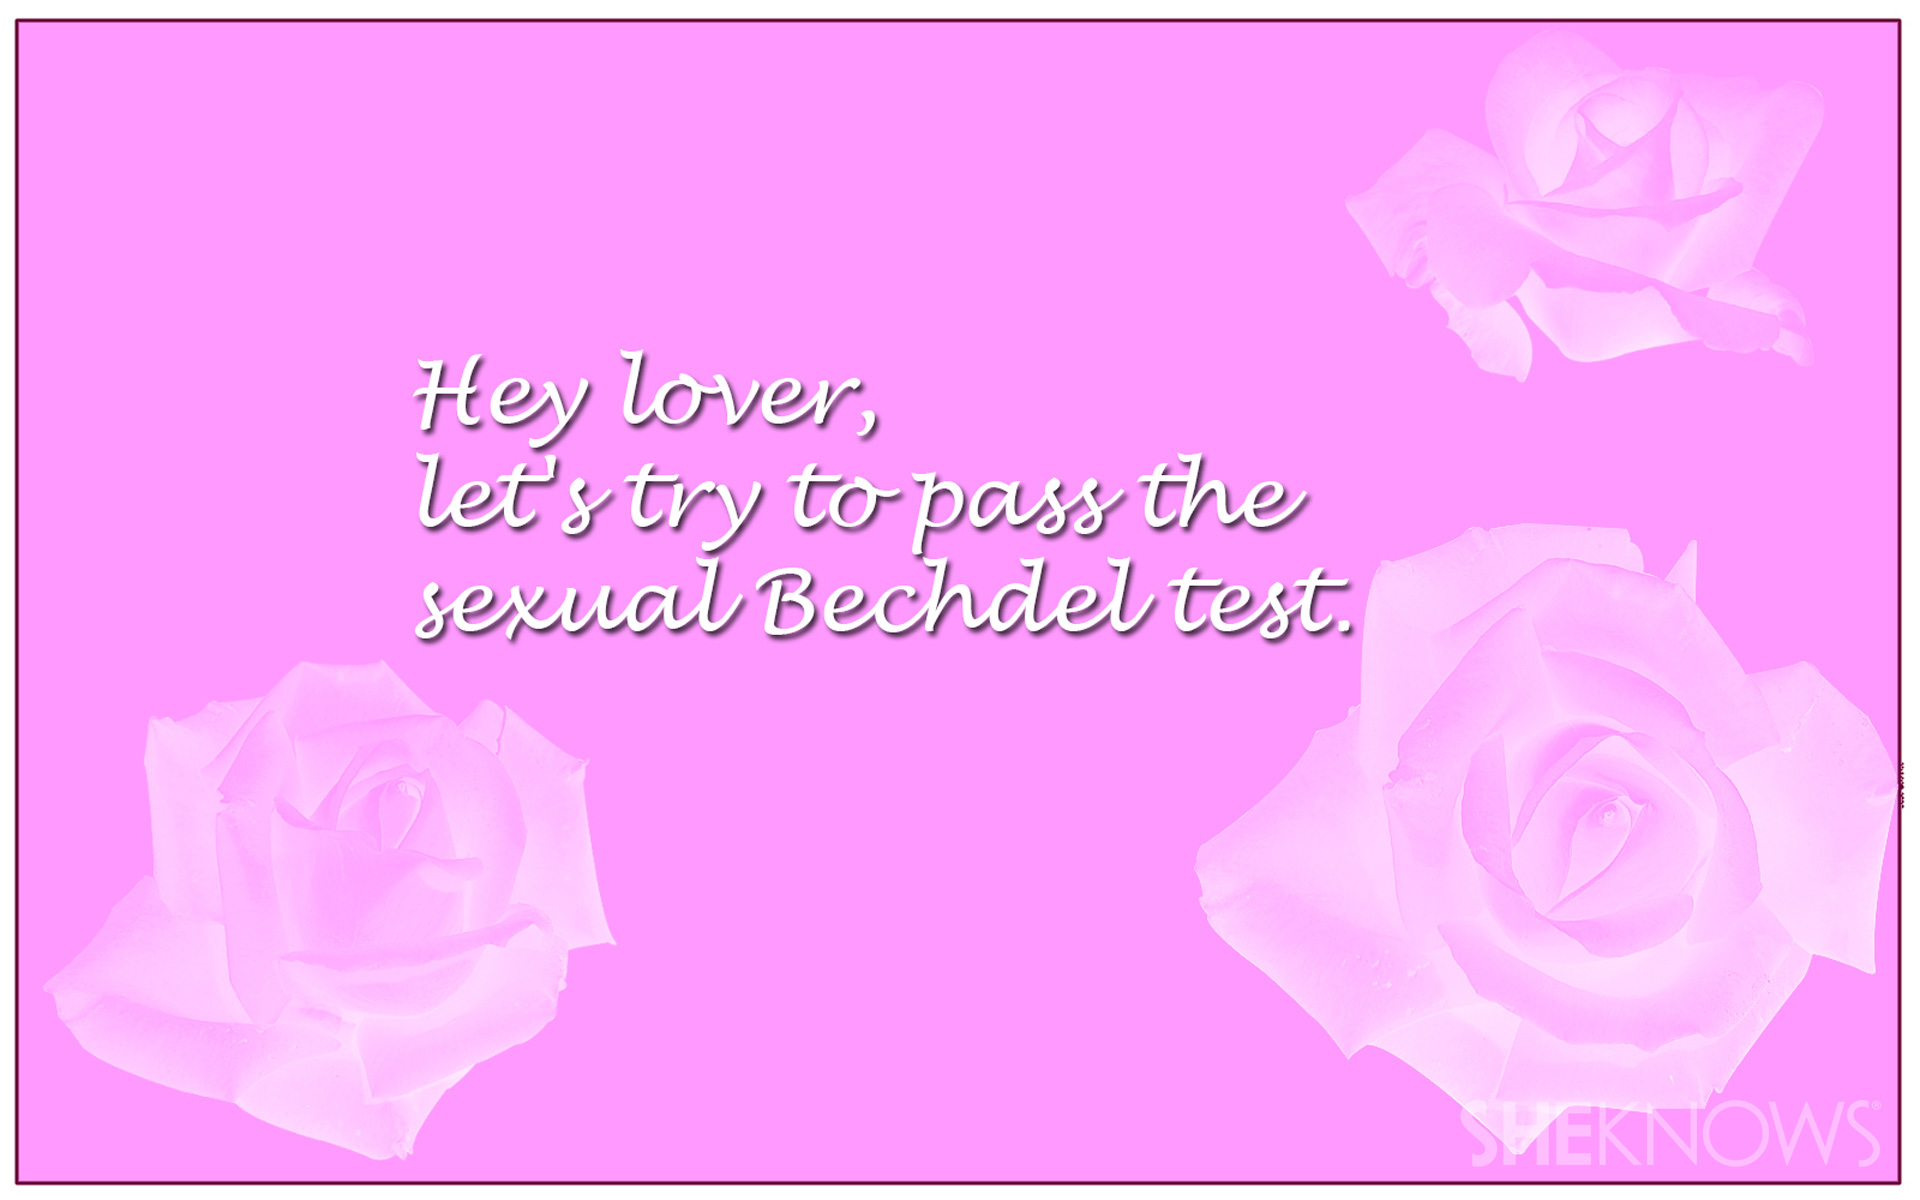 Feminist Valetine's Day Cards by SheKnows Canada - 2